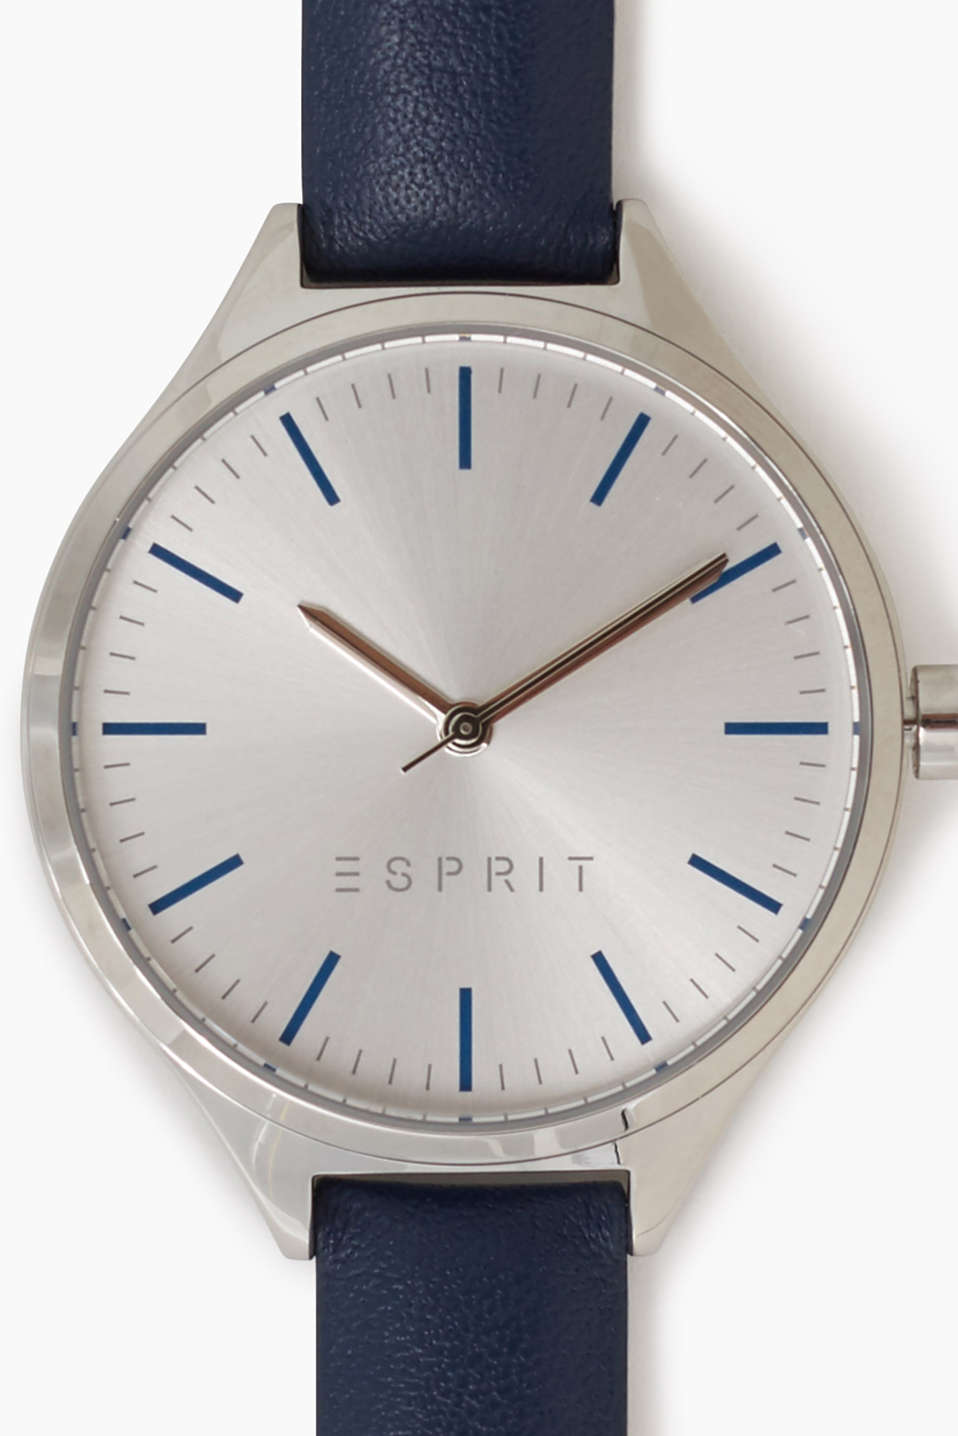 Stainless steel watch + blue leather strap